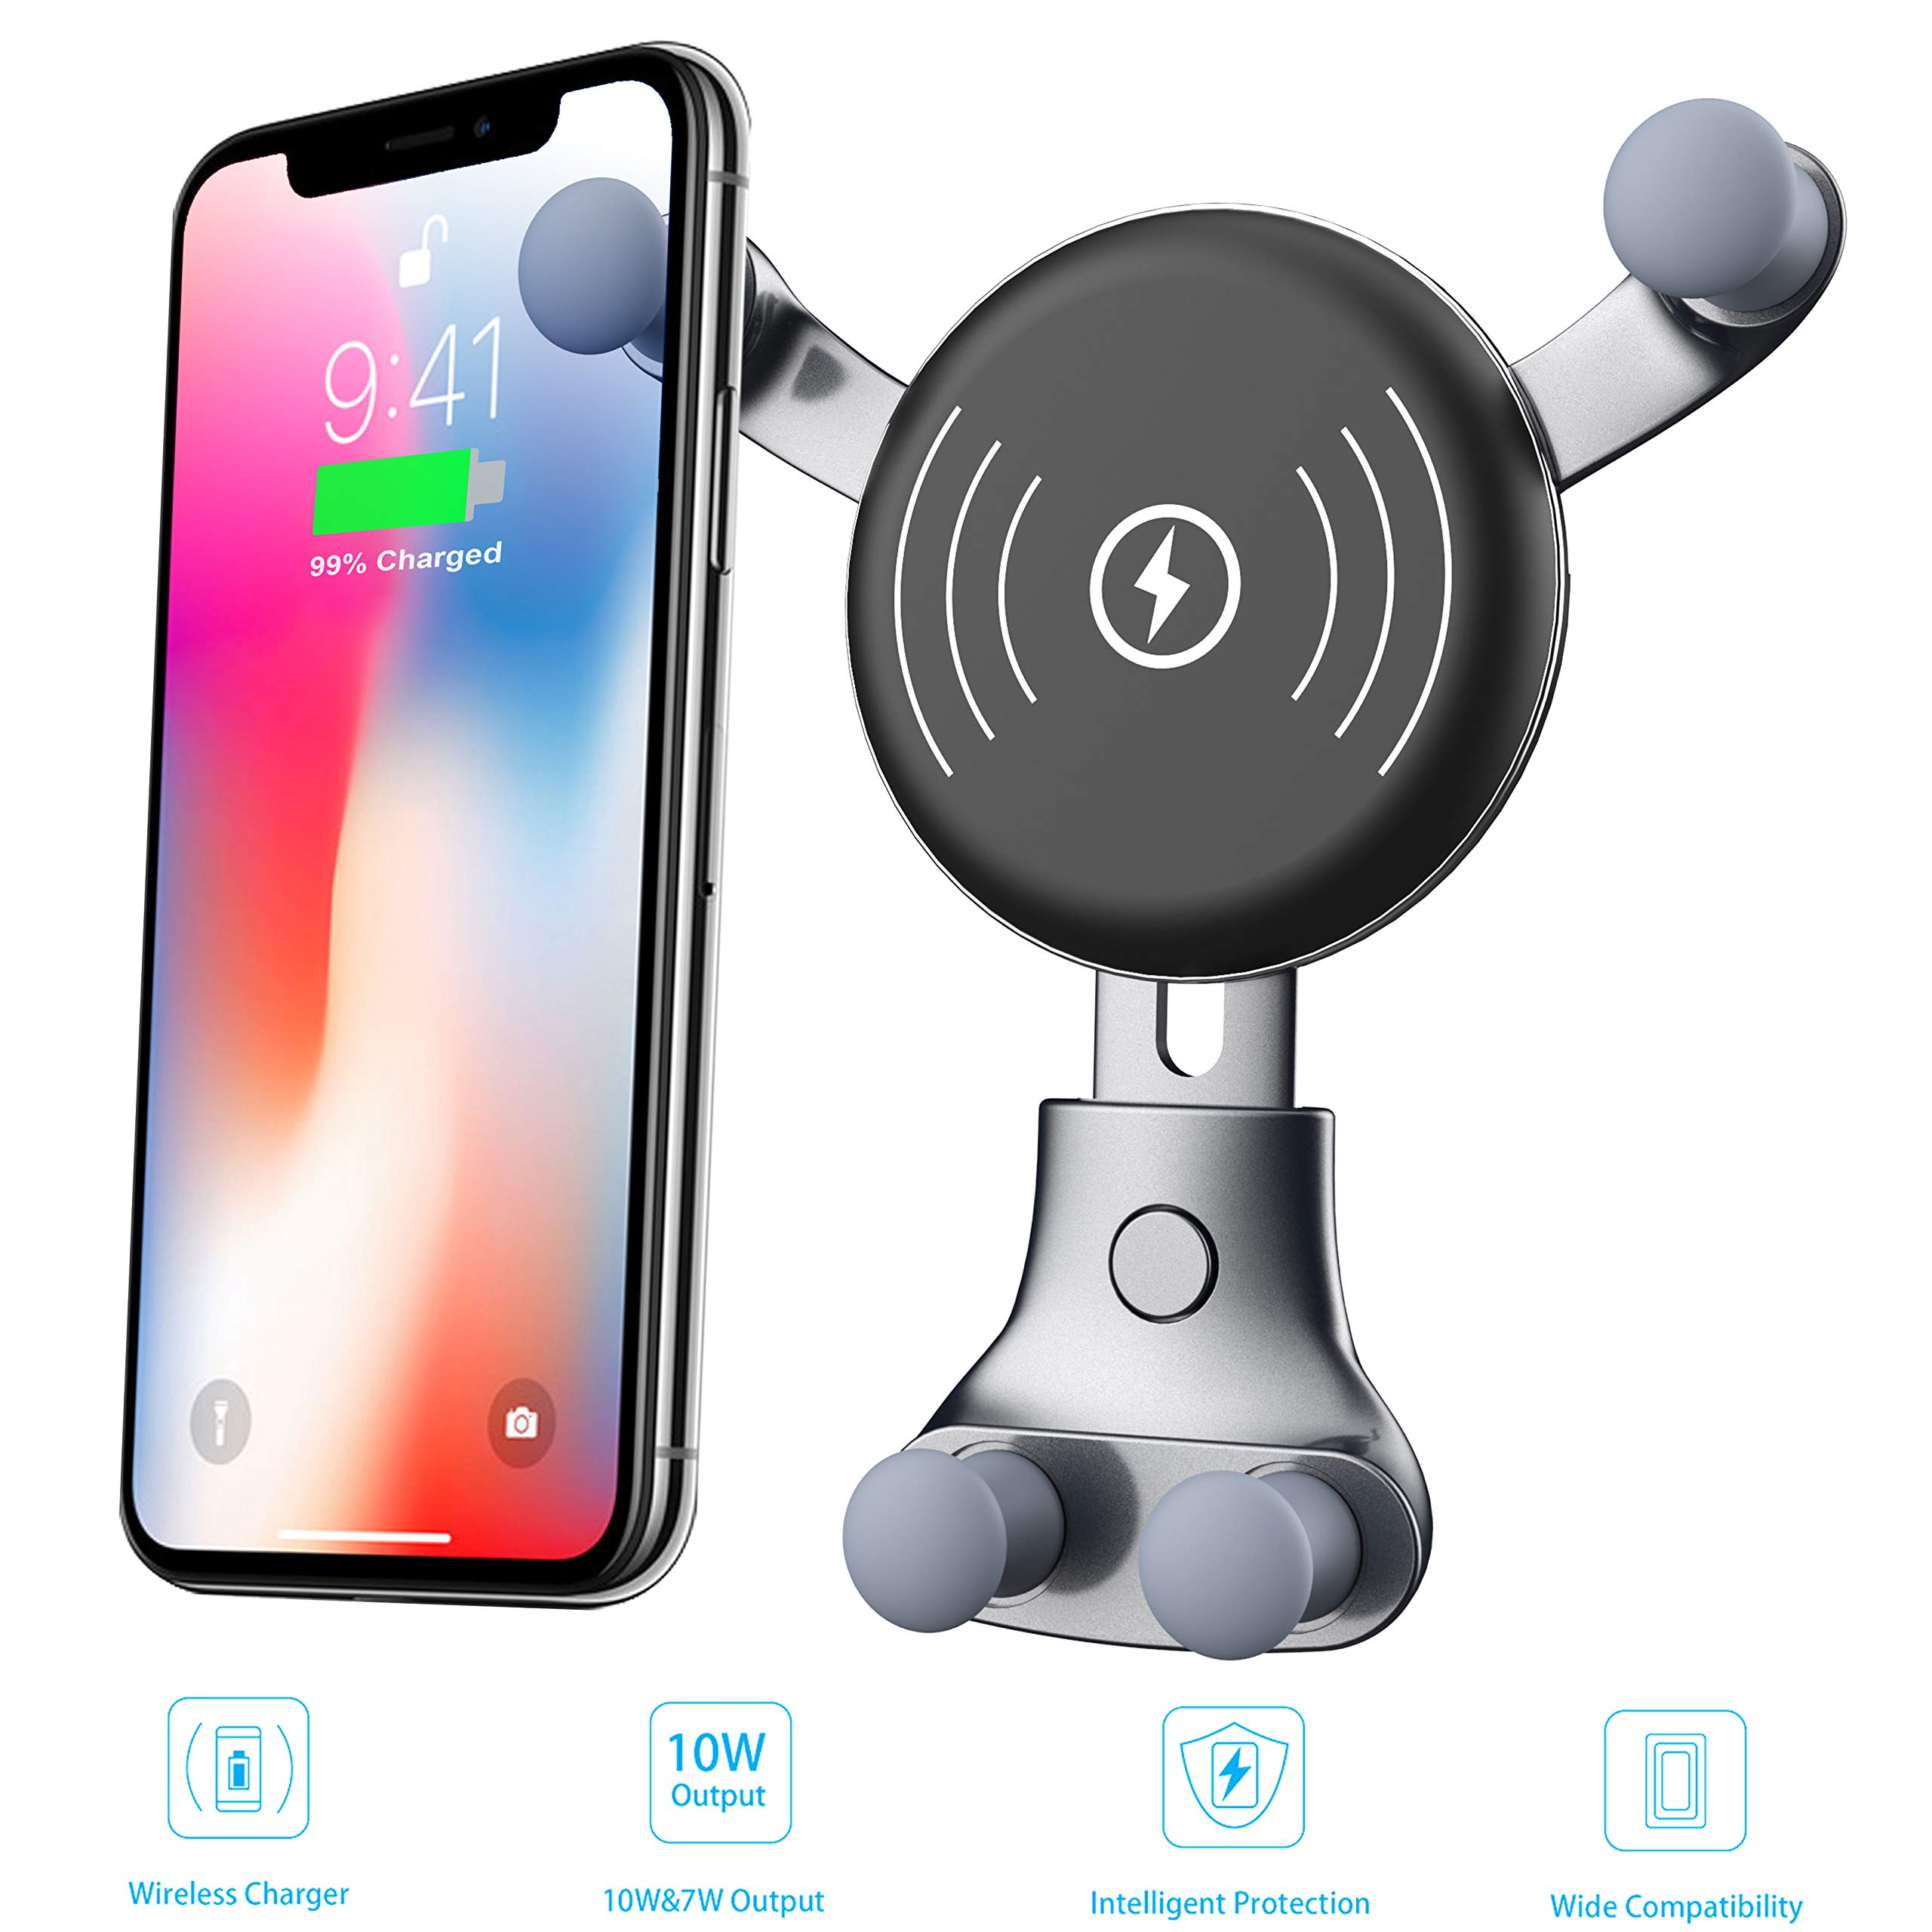 [2019 Upgraded] Wireless Car Charger, Air Vent Phone Holder, Car Cradle Mount, 10W Compatible for Samsung Galaxy S9/S9+/S8/S8+/S10/S10+/Note 8/9, 7.5W Compatible for iPhone Xs Max/Xs/XR/X/8/8+